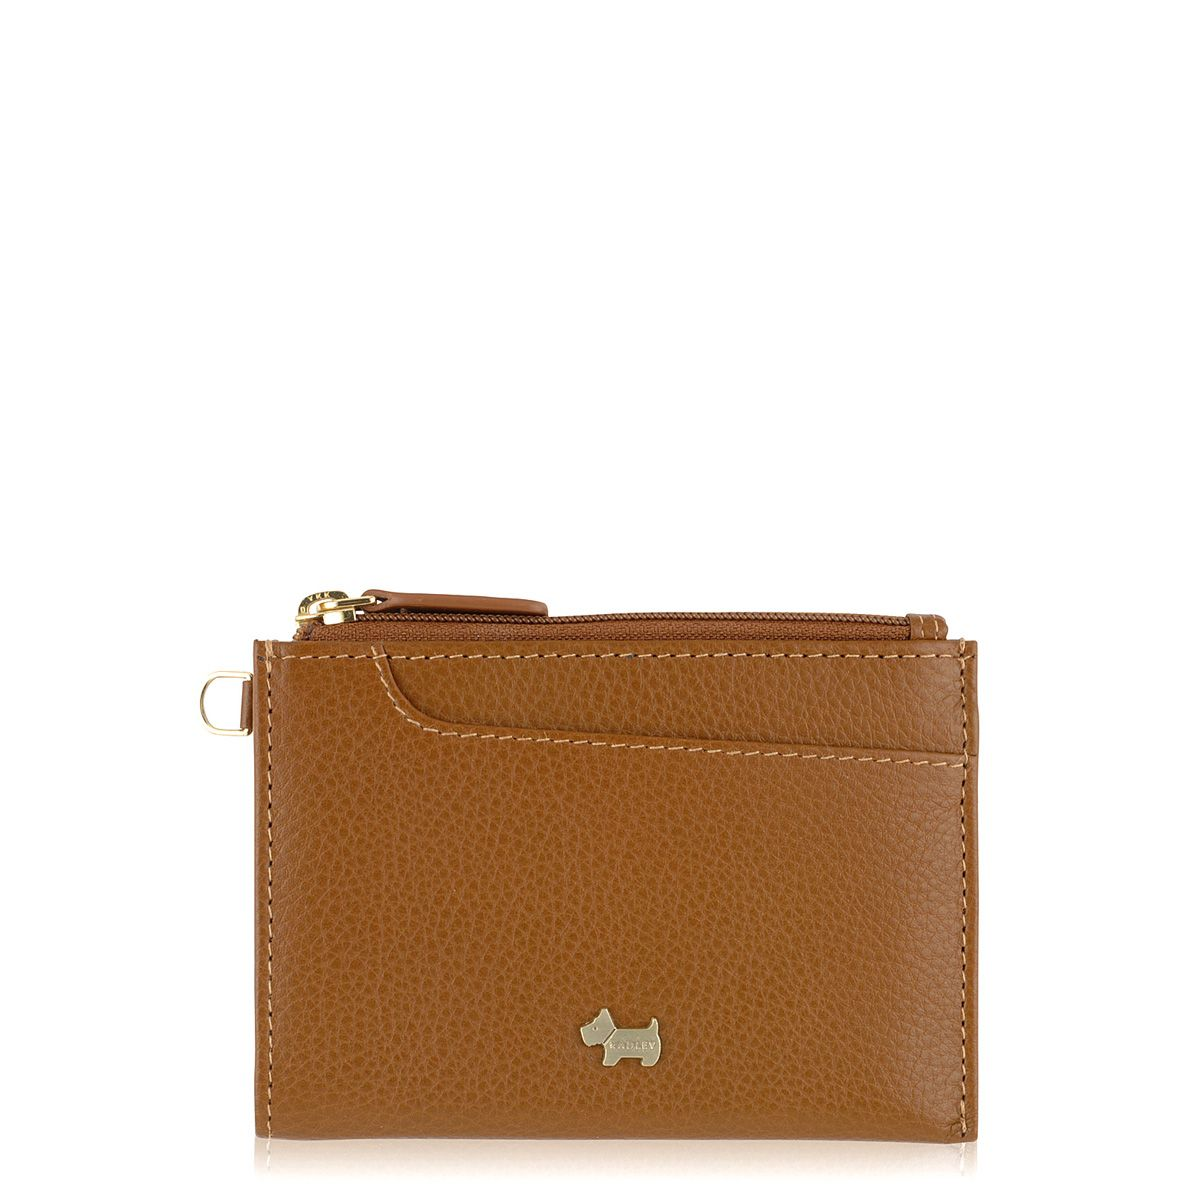 Radley Pocketbag tan small ziparound purse Tan